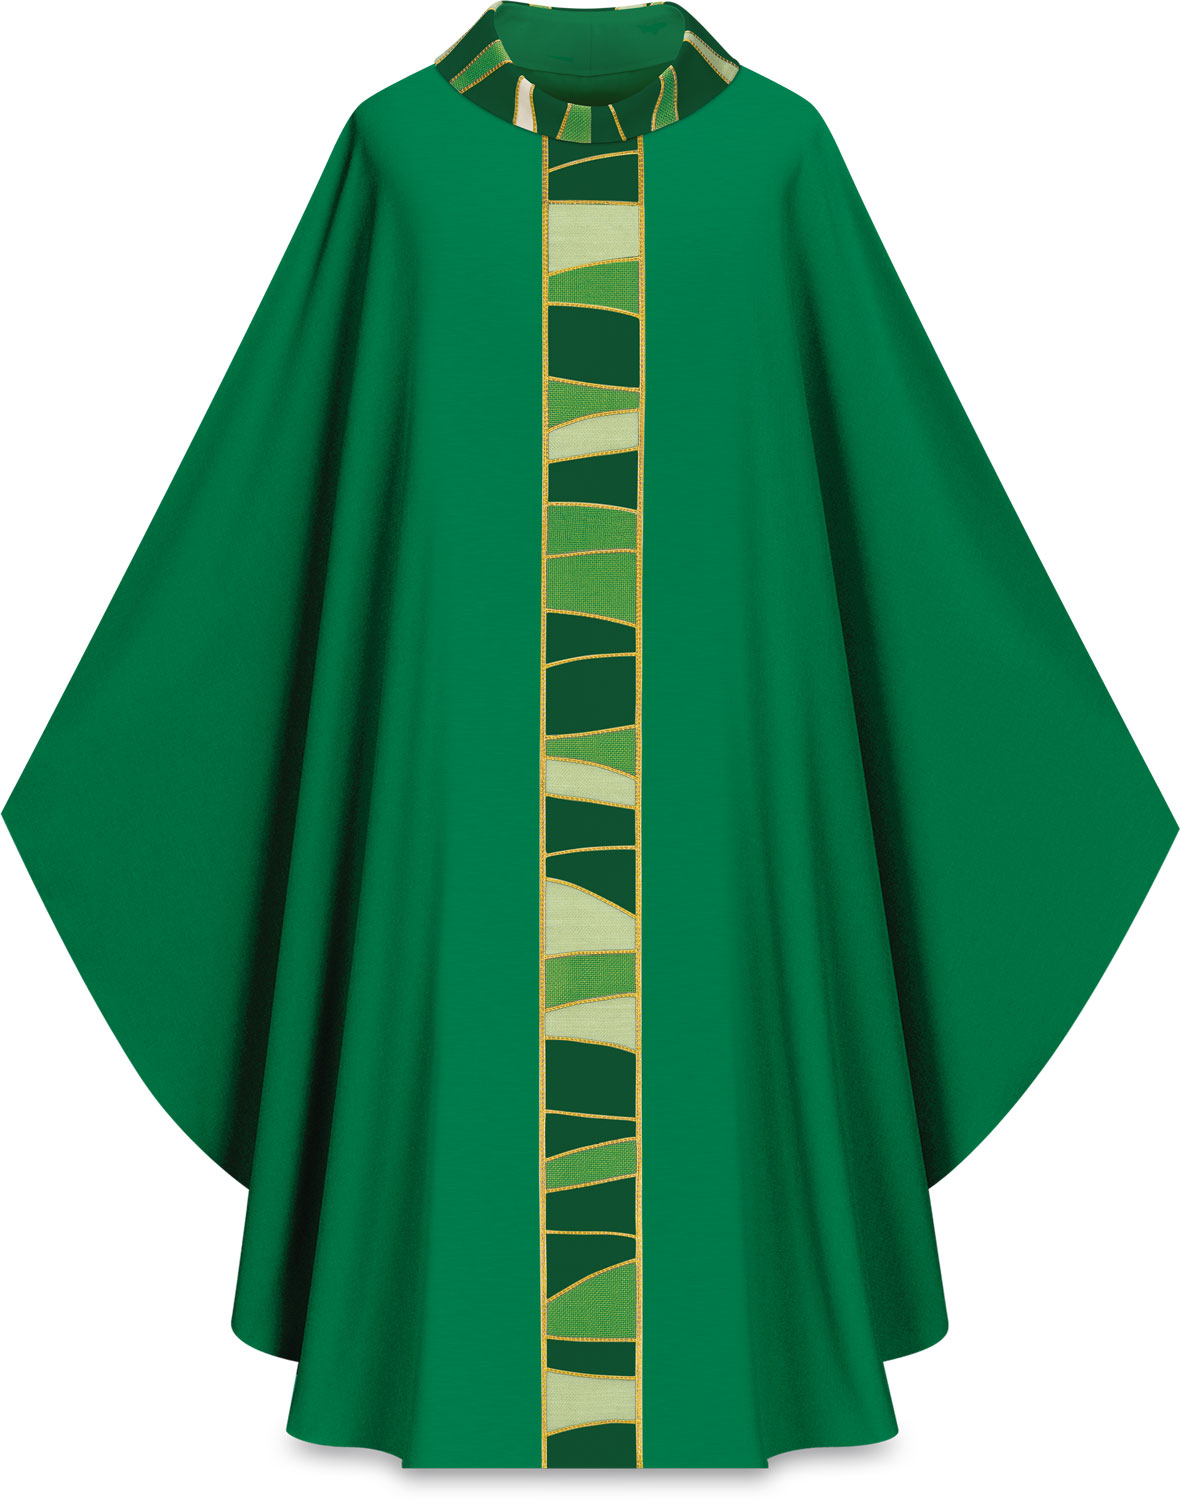 Chasuble | Green | 5176 | Slabbinck